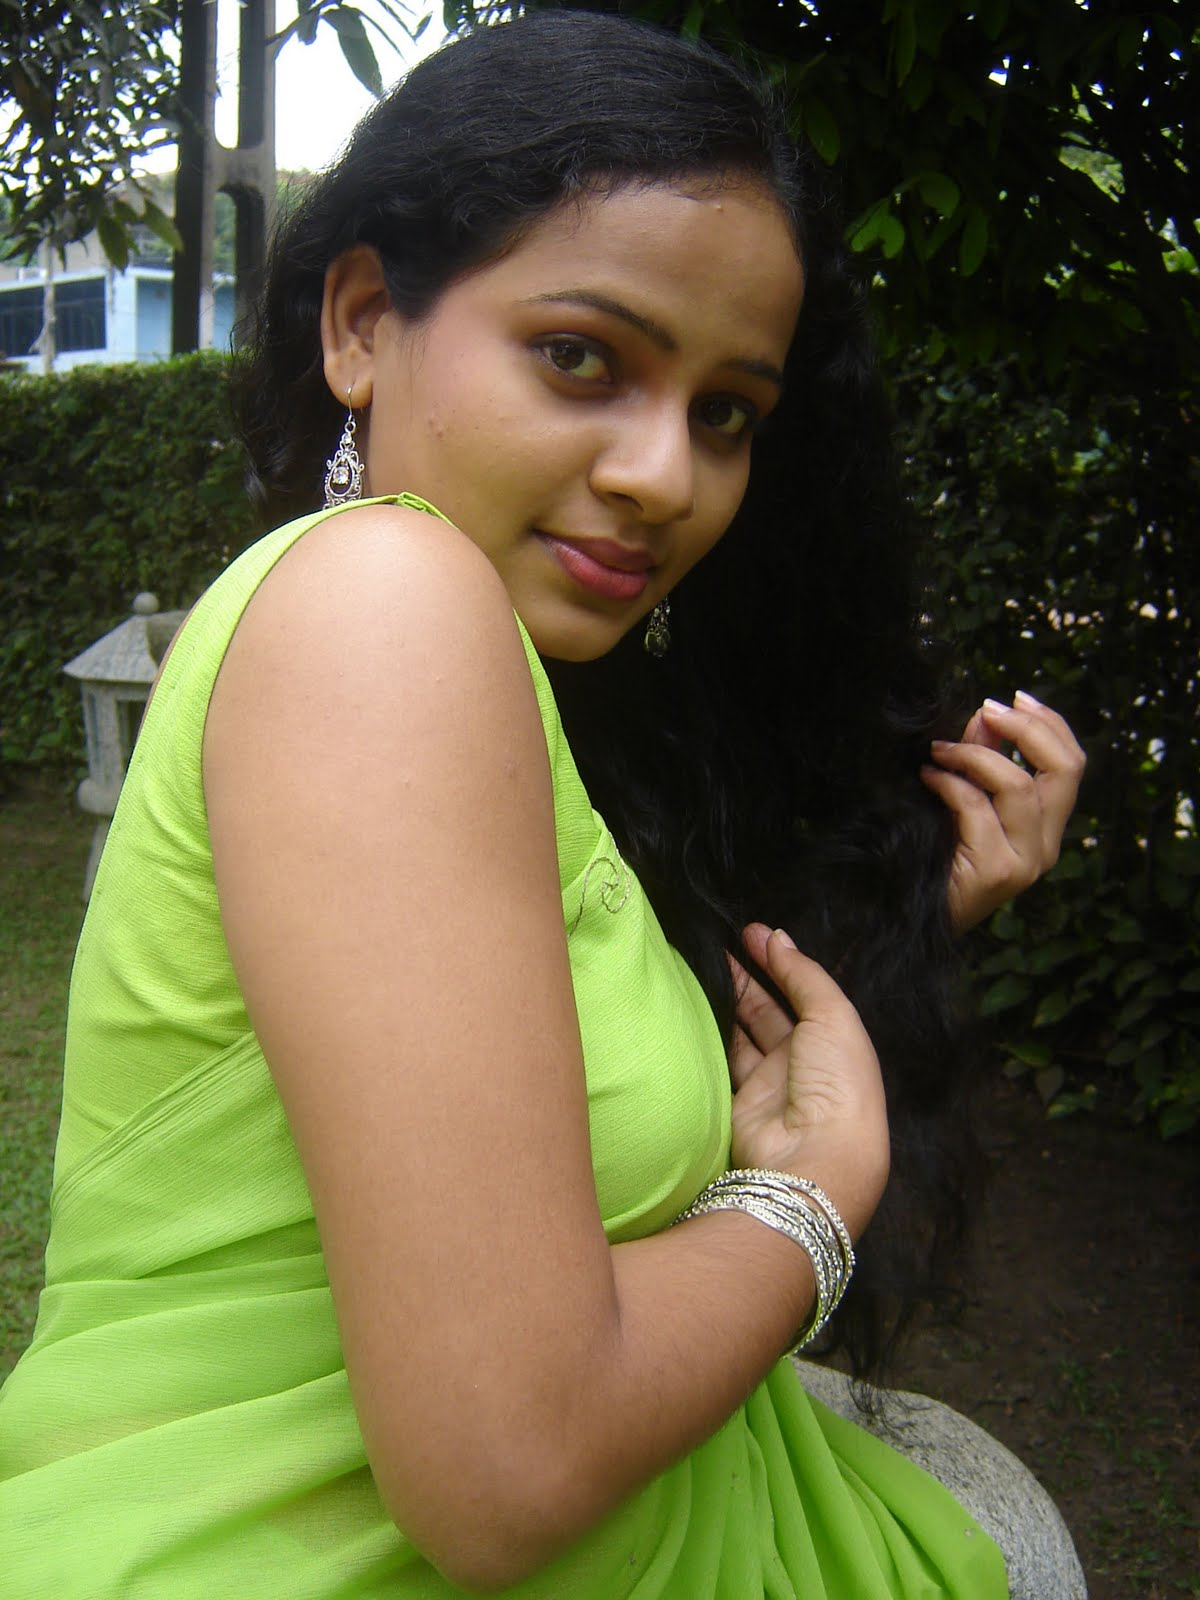 Sinhala girl photo